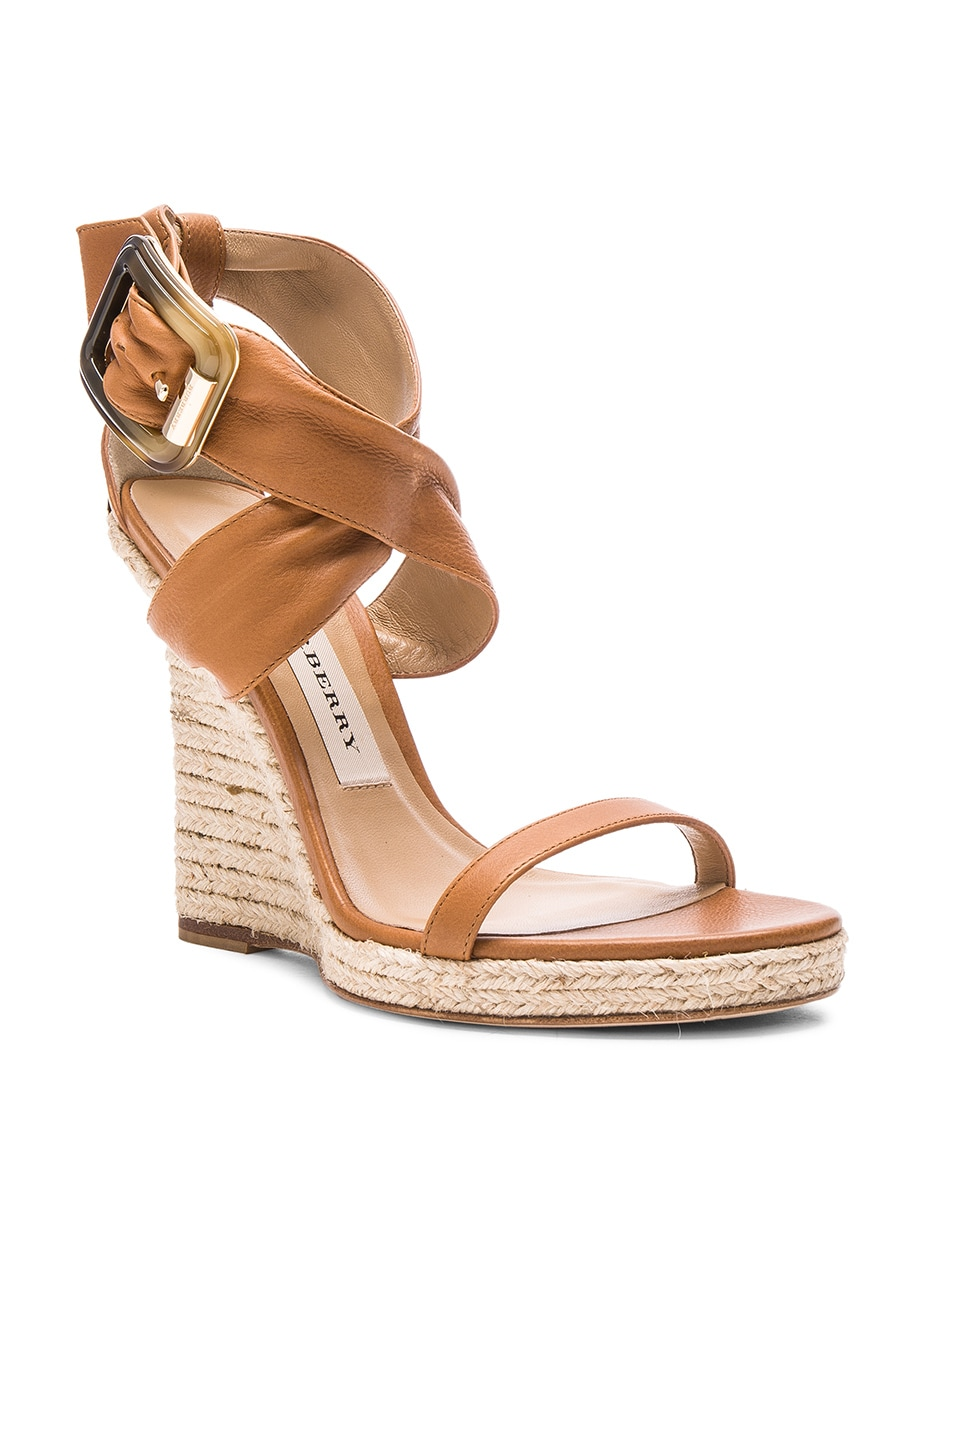 bb38ab60077 Burberry London Leather Catsbrook Espadrilles in Camel | FWRD